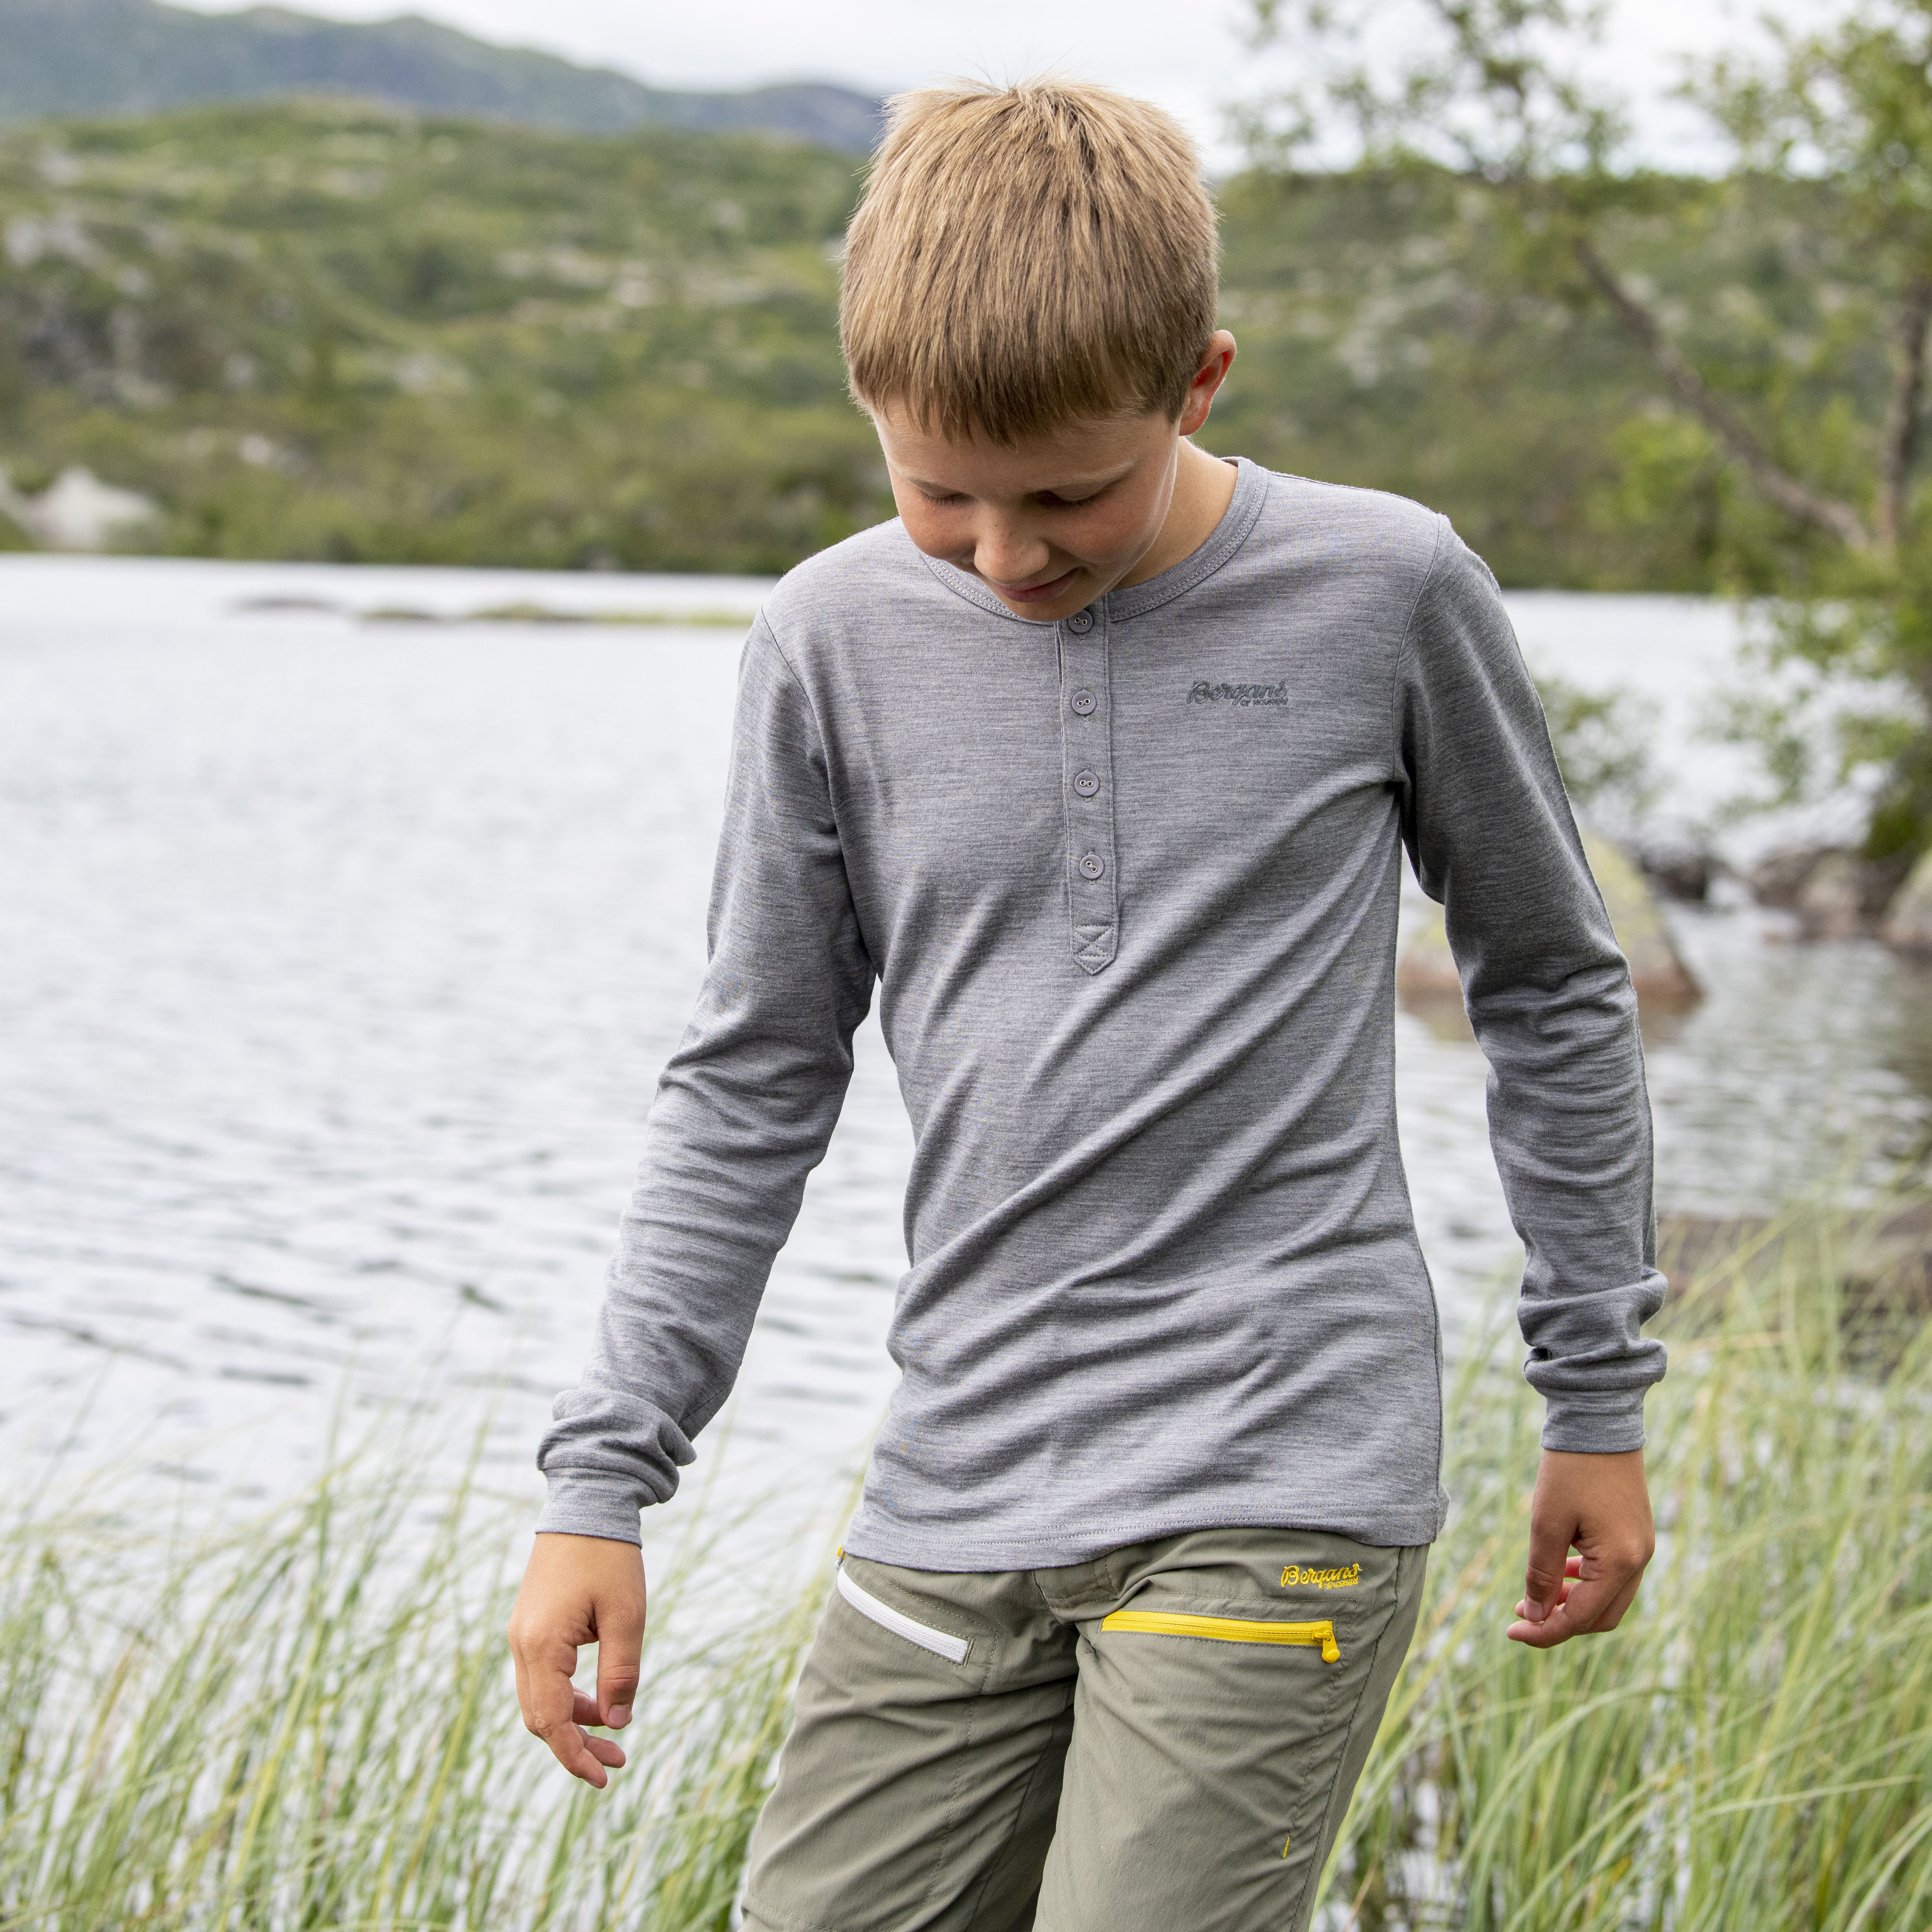 Myske Wool Youth Shirt